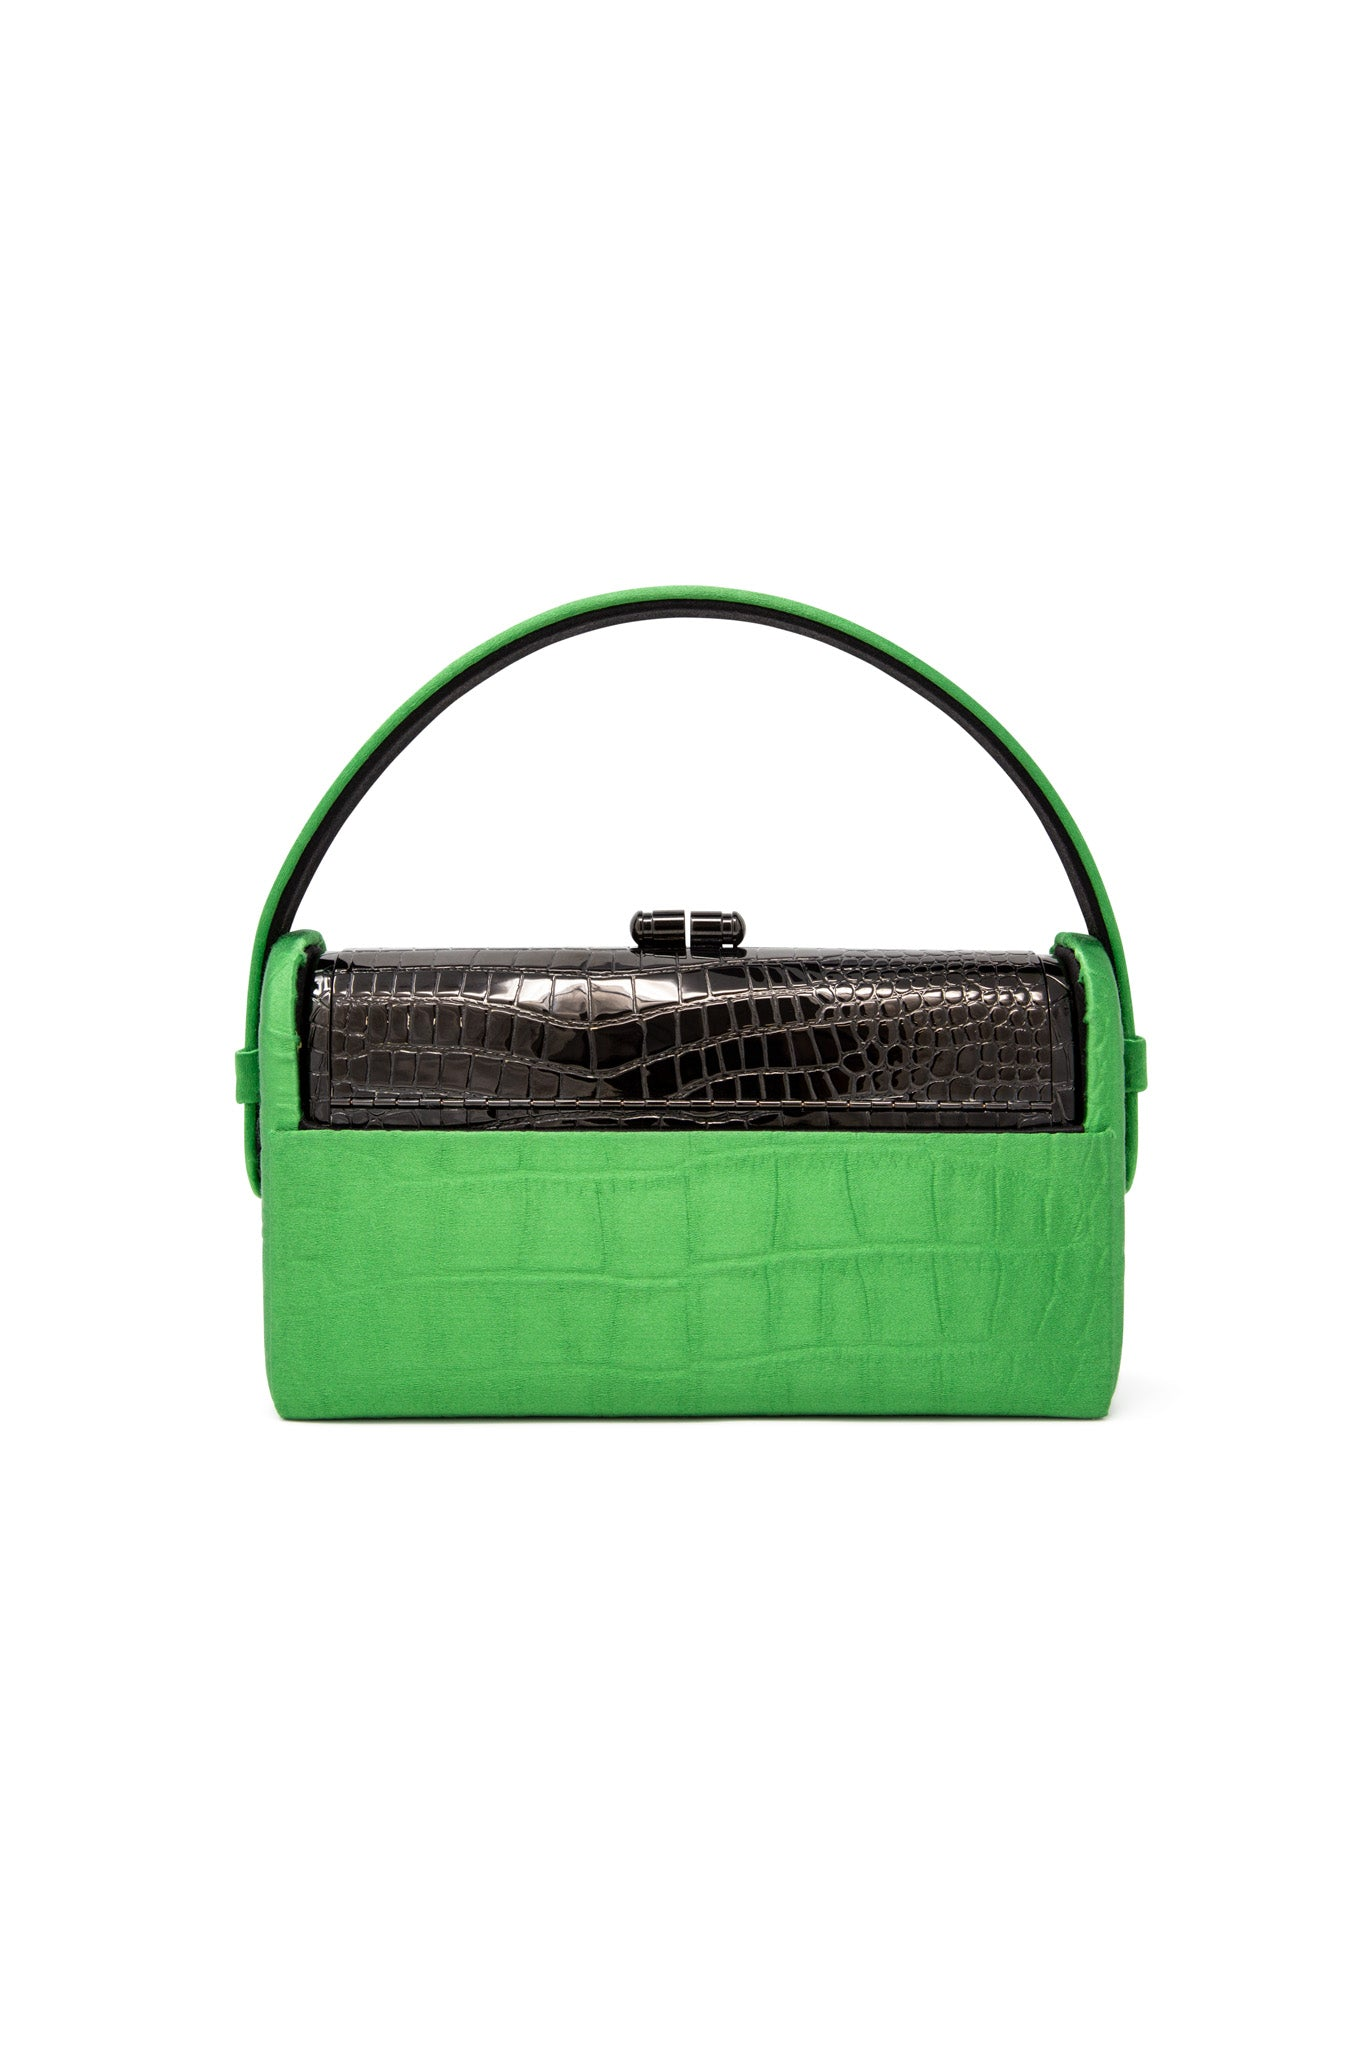 Black Croco Stamped Régine Minaudière with Grass Crocodile Embossed Satin Case